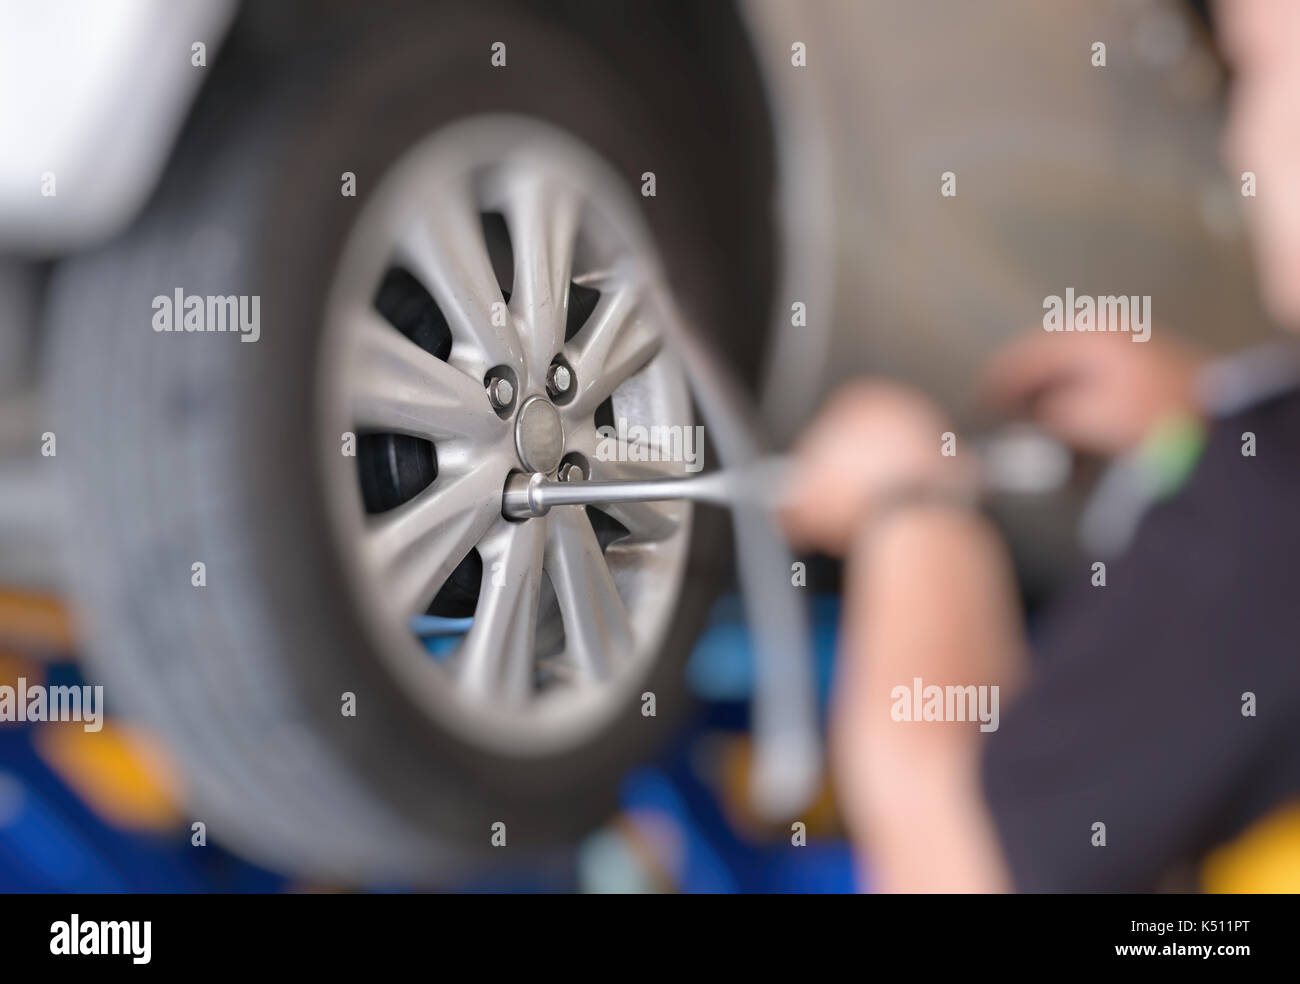 Mechanic Changing Car Wheel In Auto Repair Shop Serviceman Wrenching Spanner To Replace Vehicle Tyre Automobile Garage Fixing Checking Concept